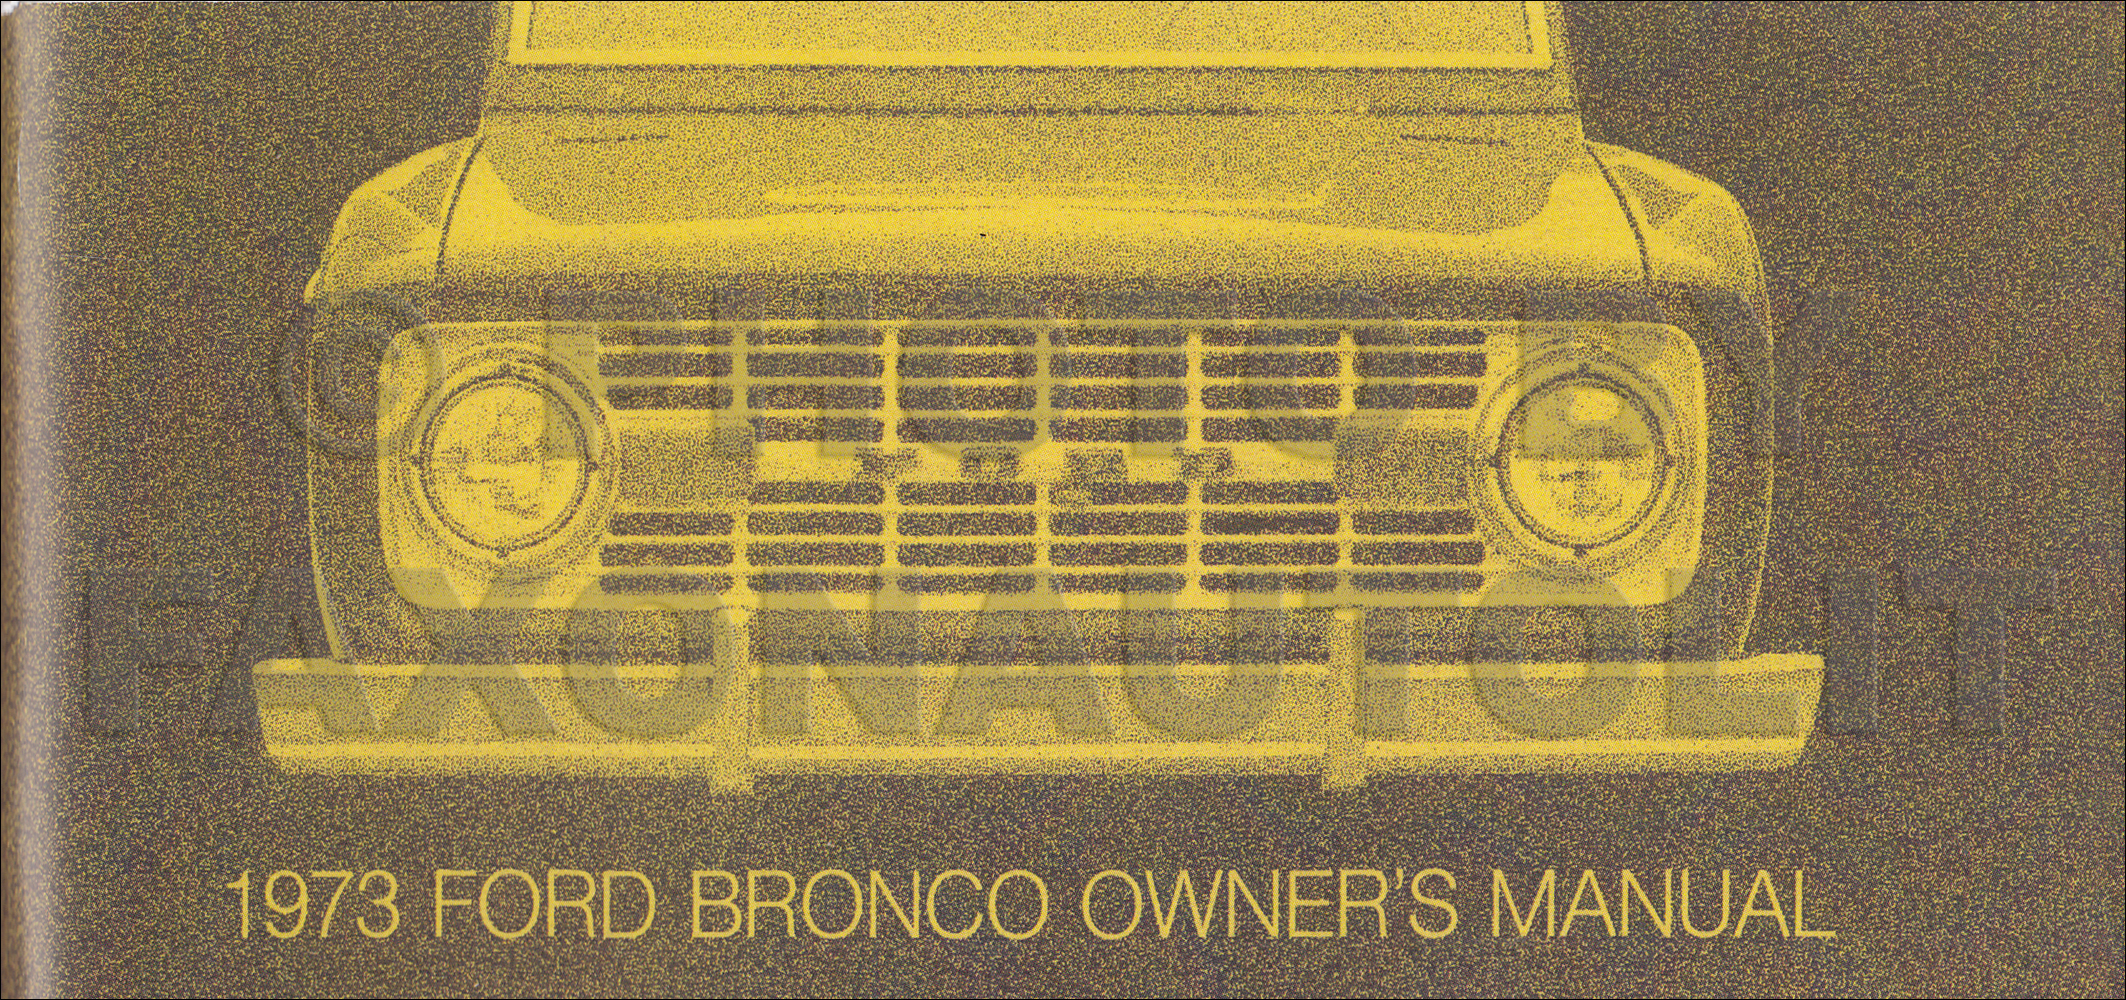 1973 Ford Bronco Owner's Manual Reprint